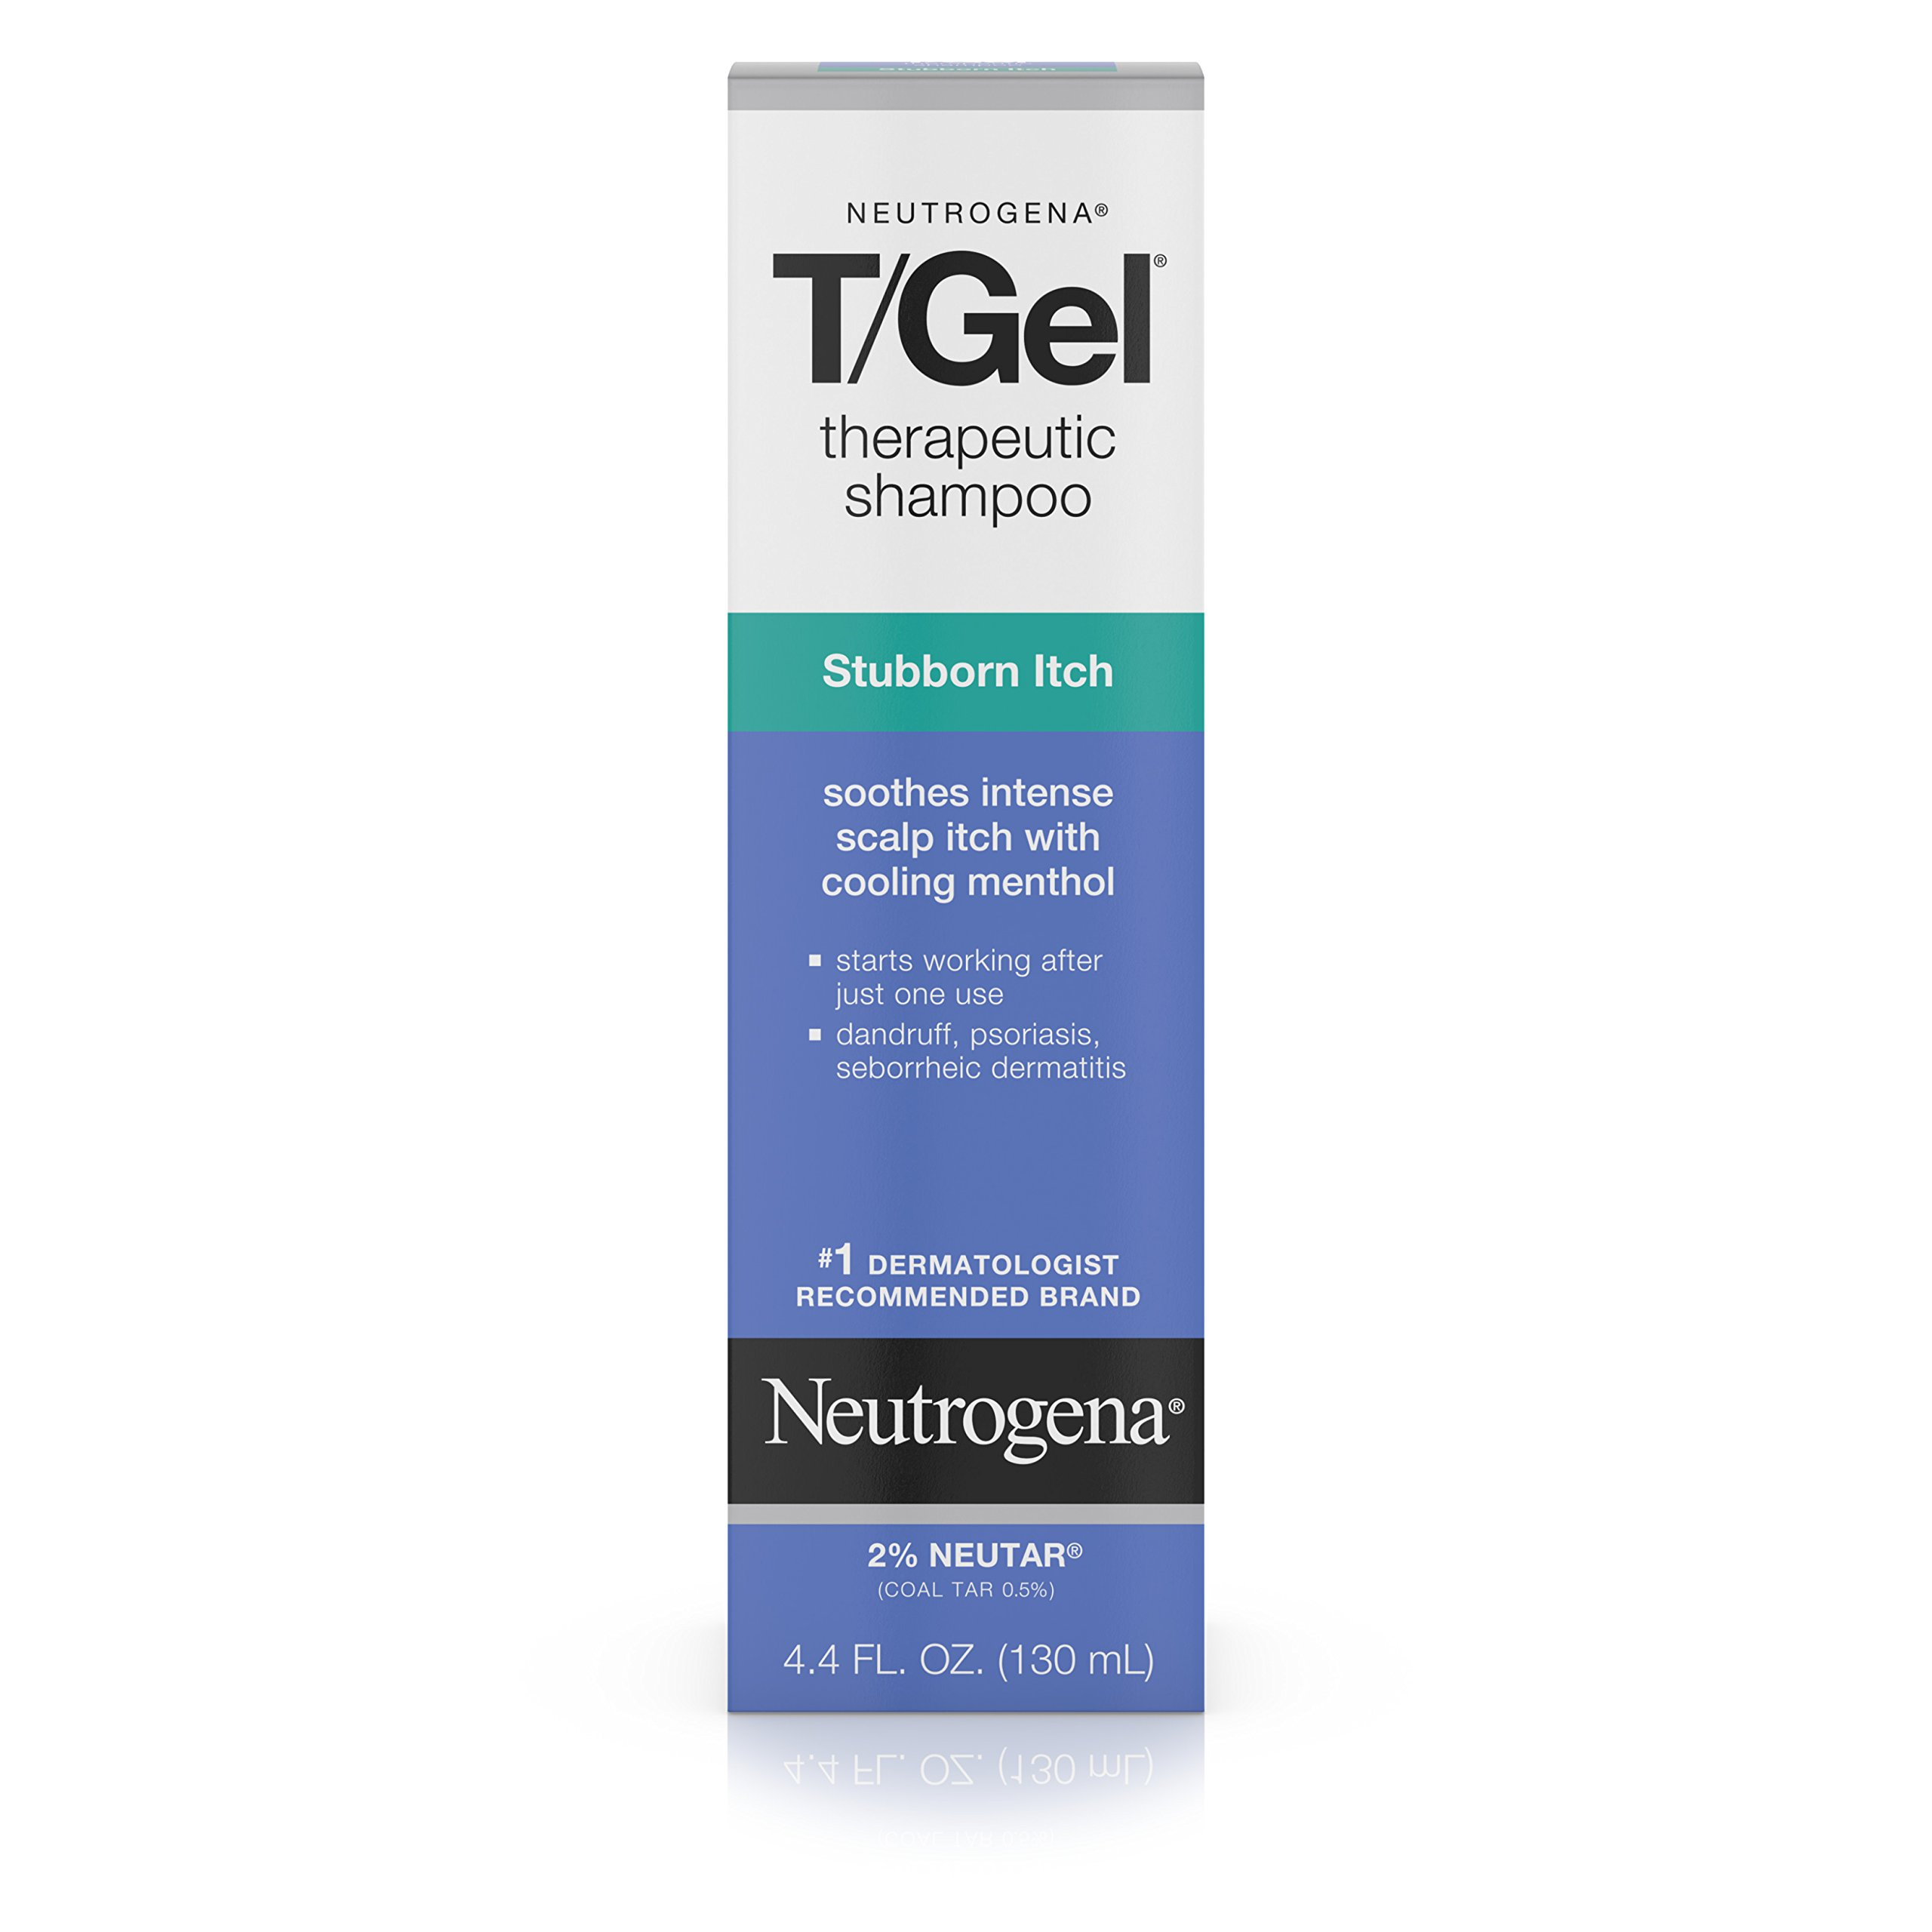 Neutrogena T/Gel Therapeutic Shampoo Stubborn Itch, 4.4 Fl. Oz.